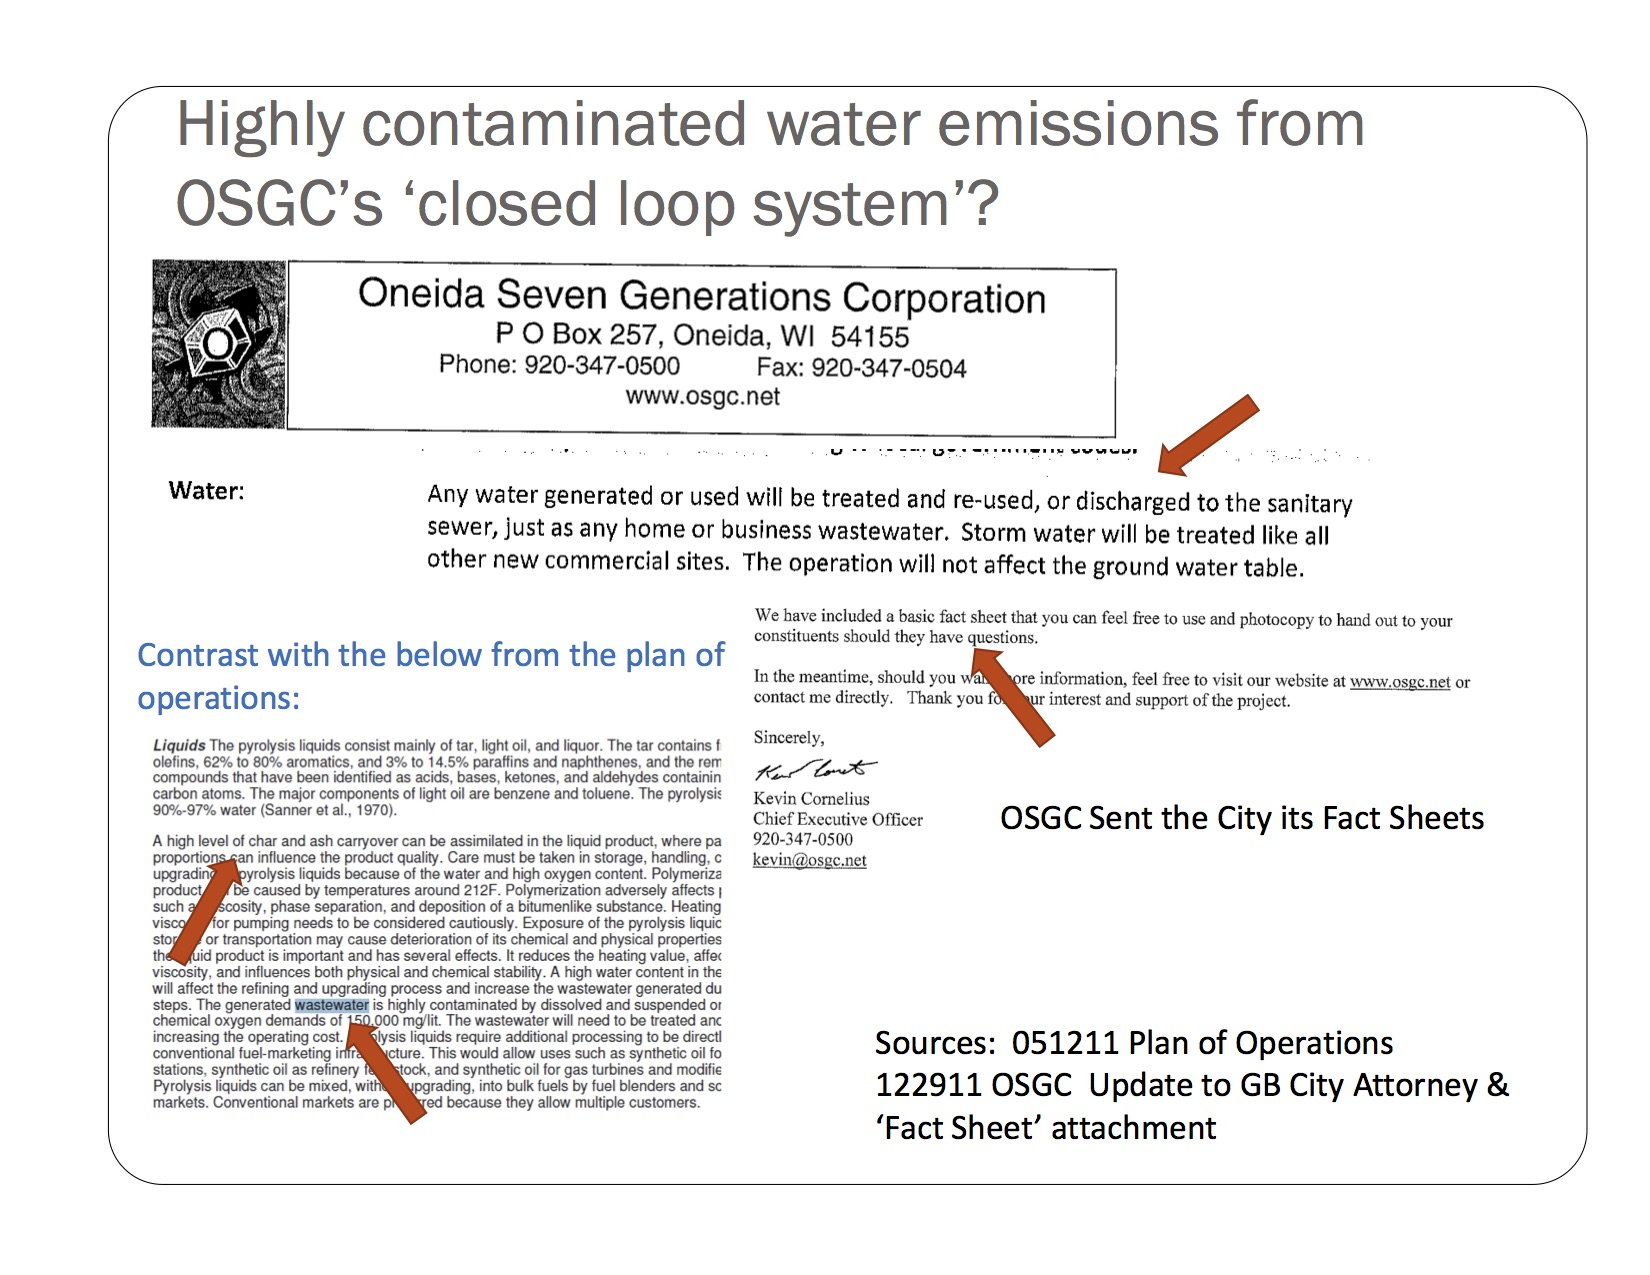 2012-04-18 IFBC re OSGC Trash Incinerator 25